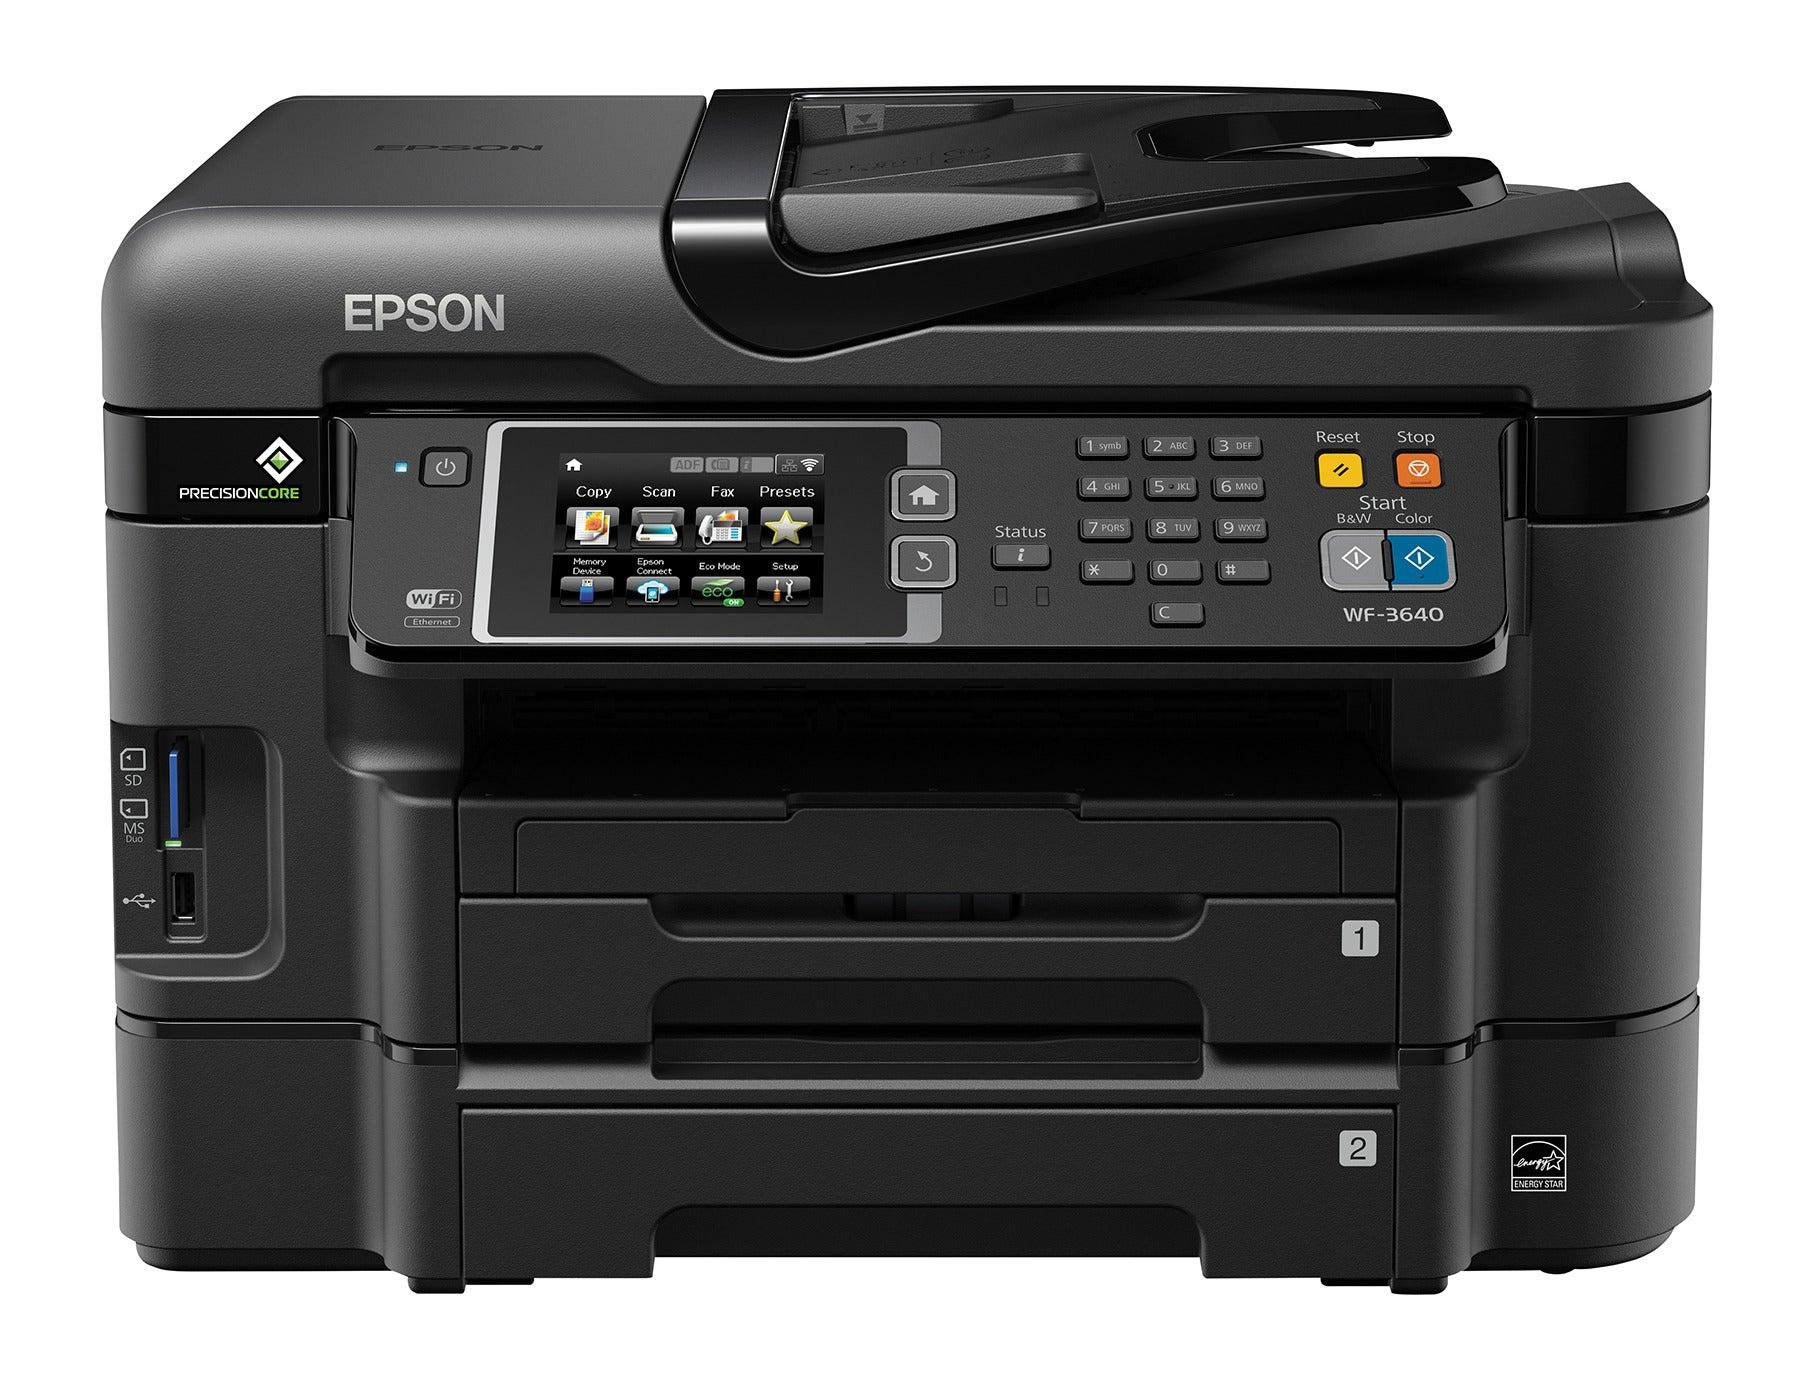 Epson WorkForce printers with PrecisionCore printheads | PCWorld